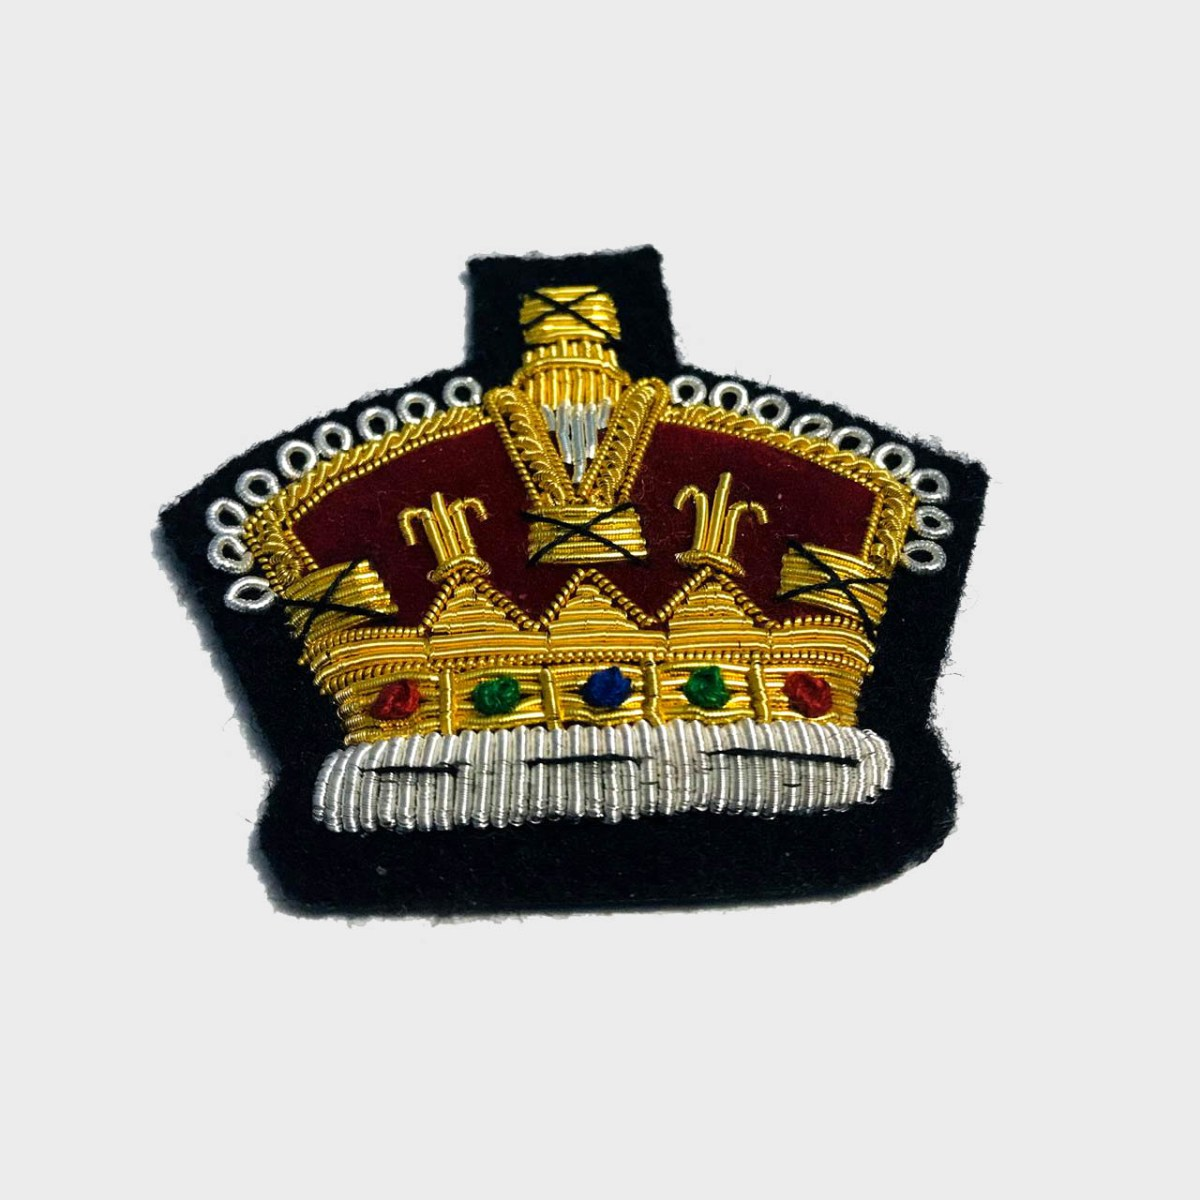 Royal Crown Bullion Embroidered Blazer Crest Patch - Fashionable 3D embroidered Royal Crown Crest Made by skilled artisans Bullion wire hand Stitched on Black colour Felt Size is approx 2x2 inches sew-on backing only 5